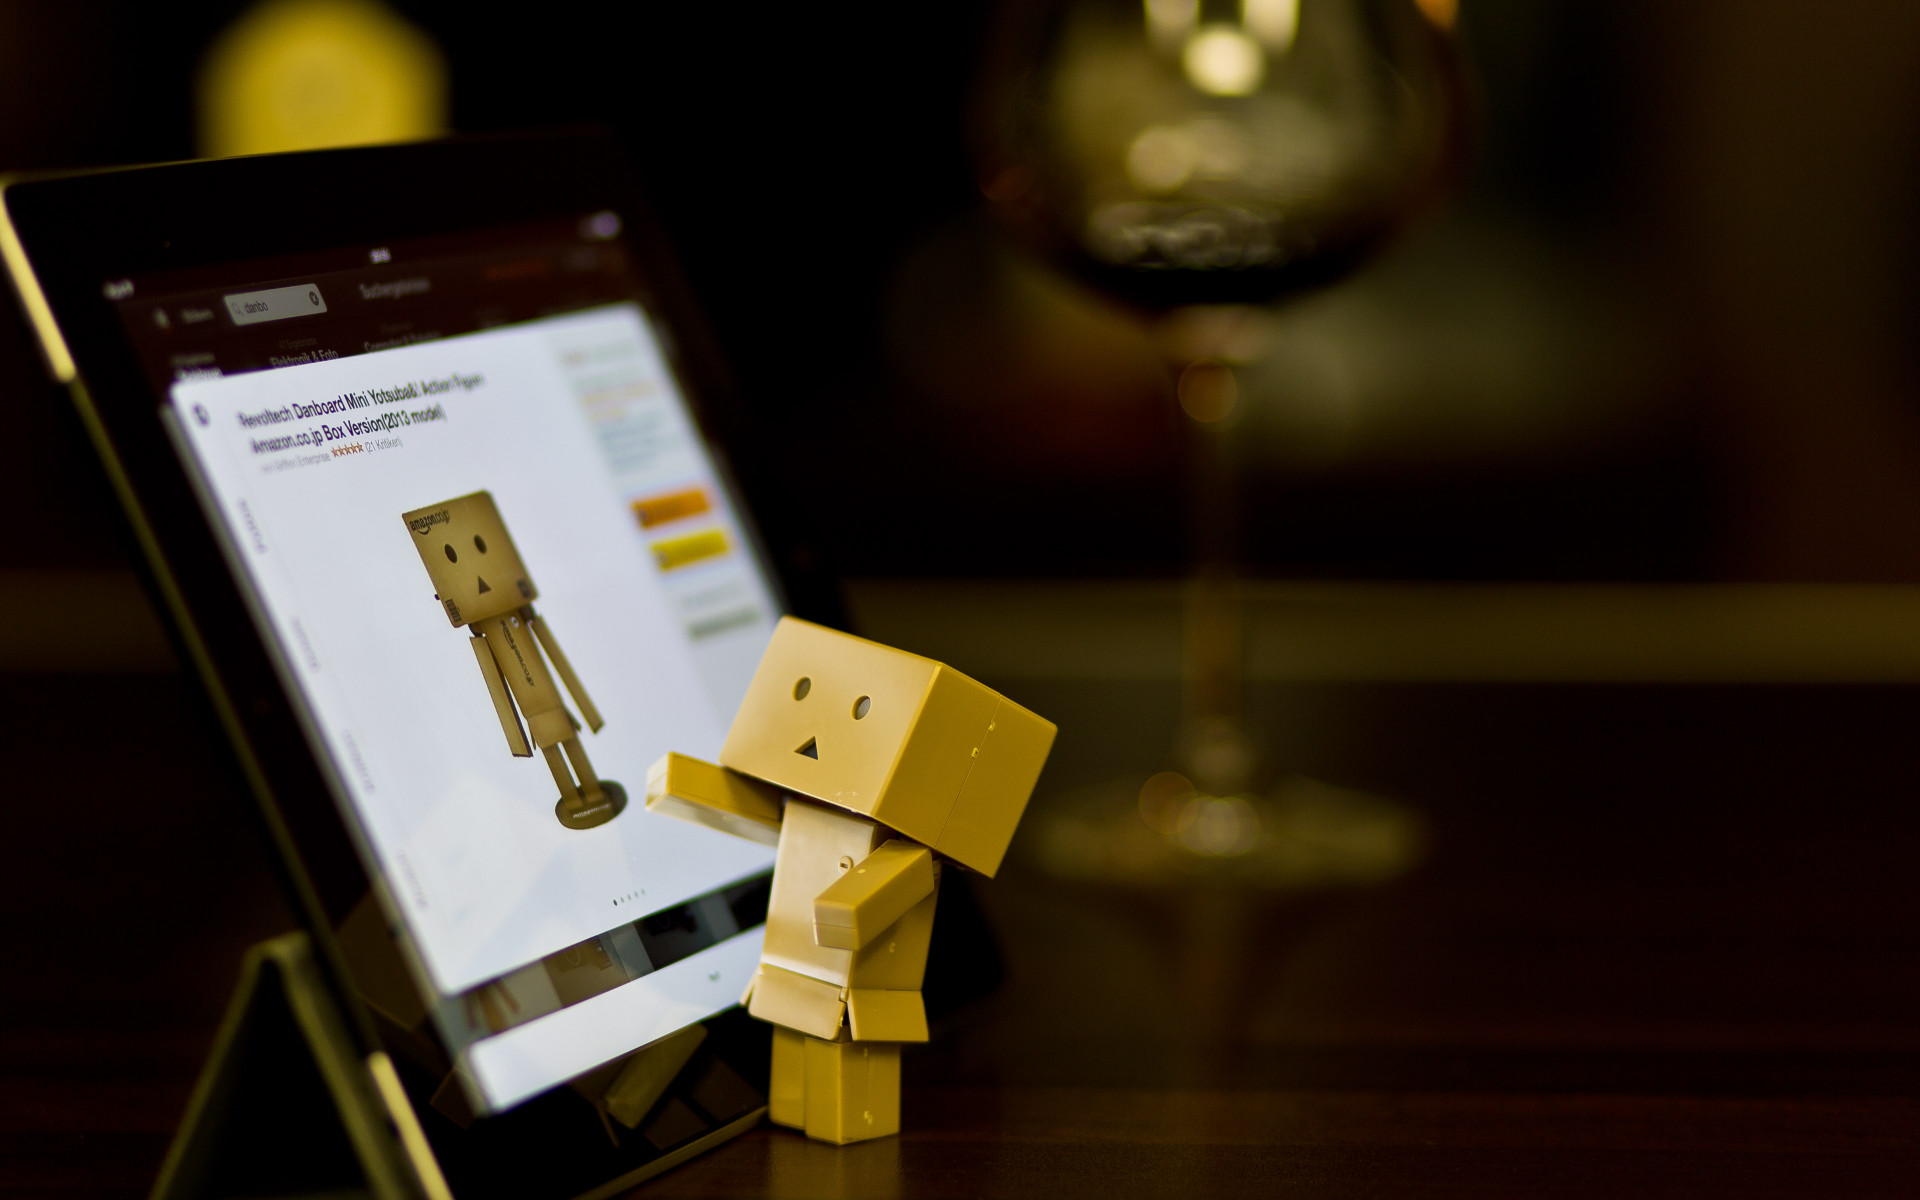 Danbo with tablet wallpaper 1920x1200